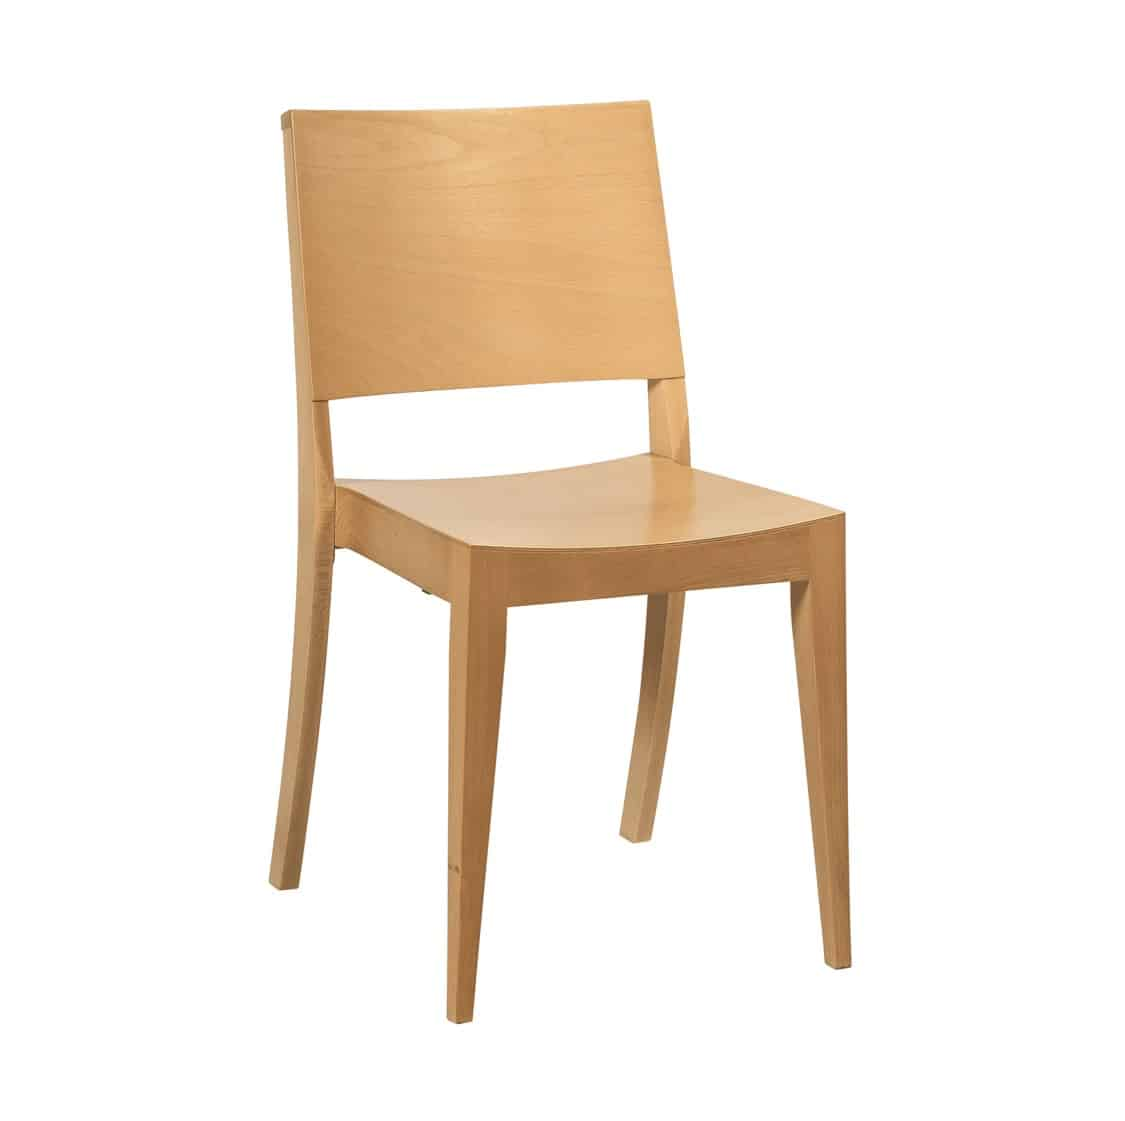 Robyn Side Chair All Wood Chair DeFrae Contract Furniture